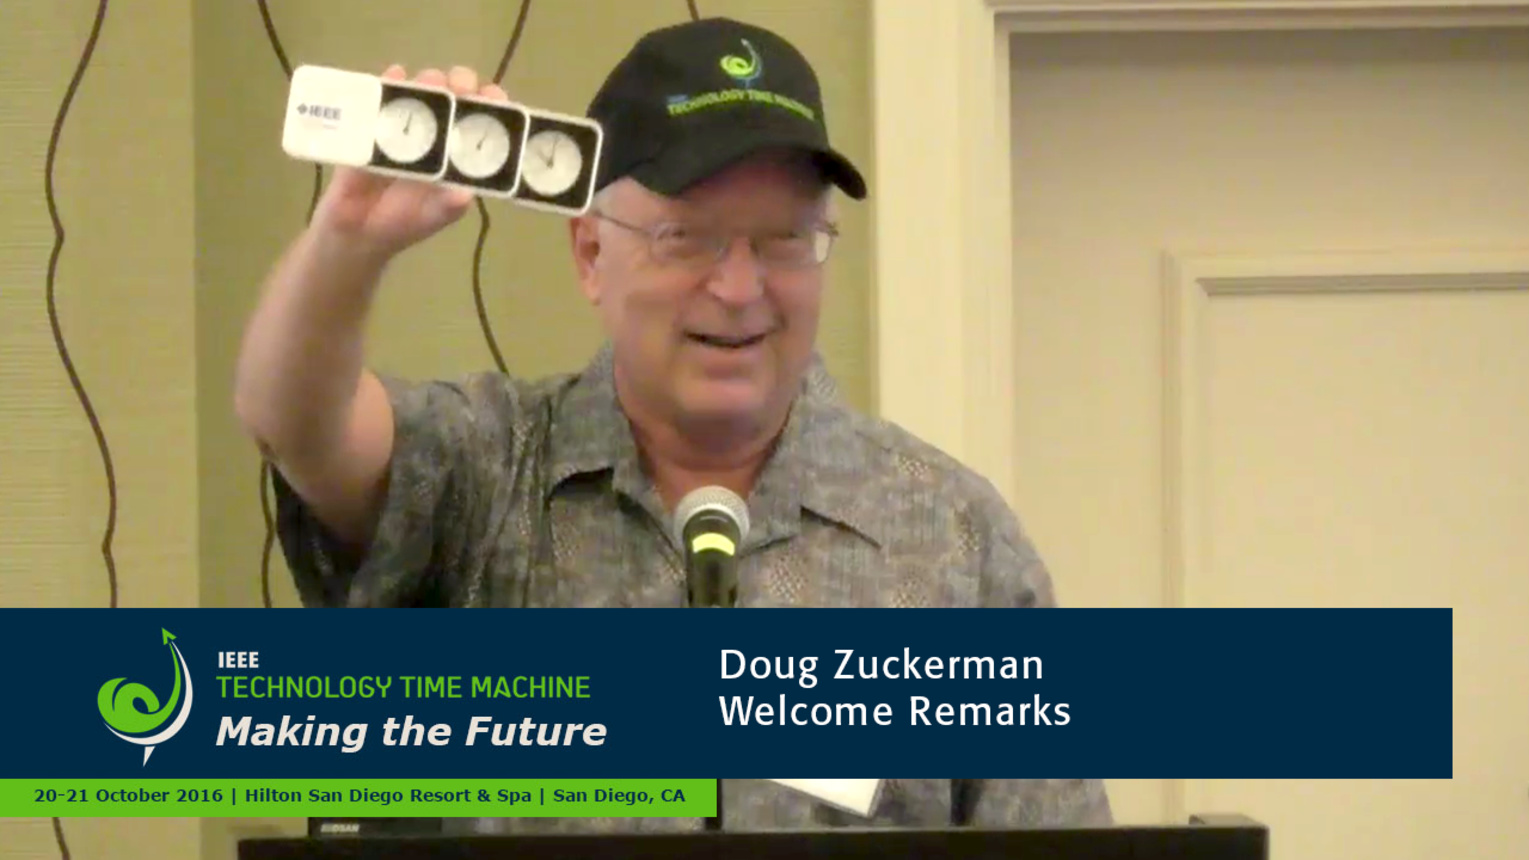 Welcome Remarks - Doug Zuckerman: 2016 Technology Time Machine